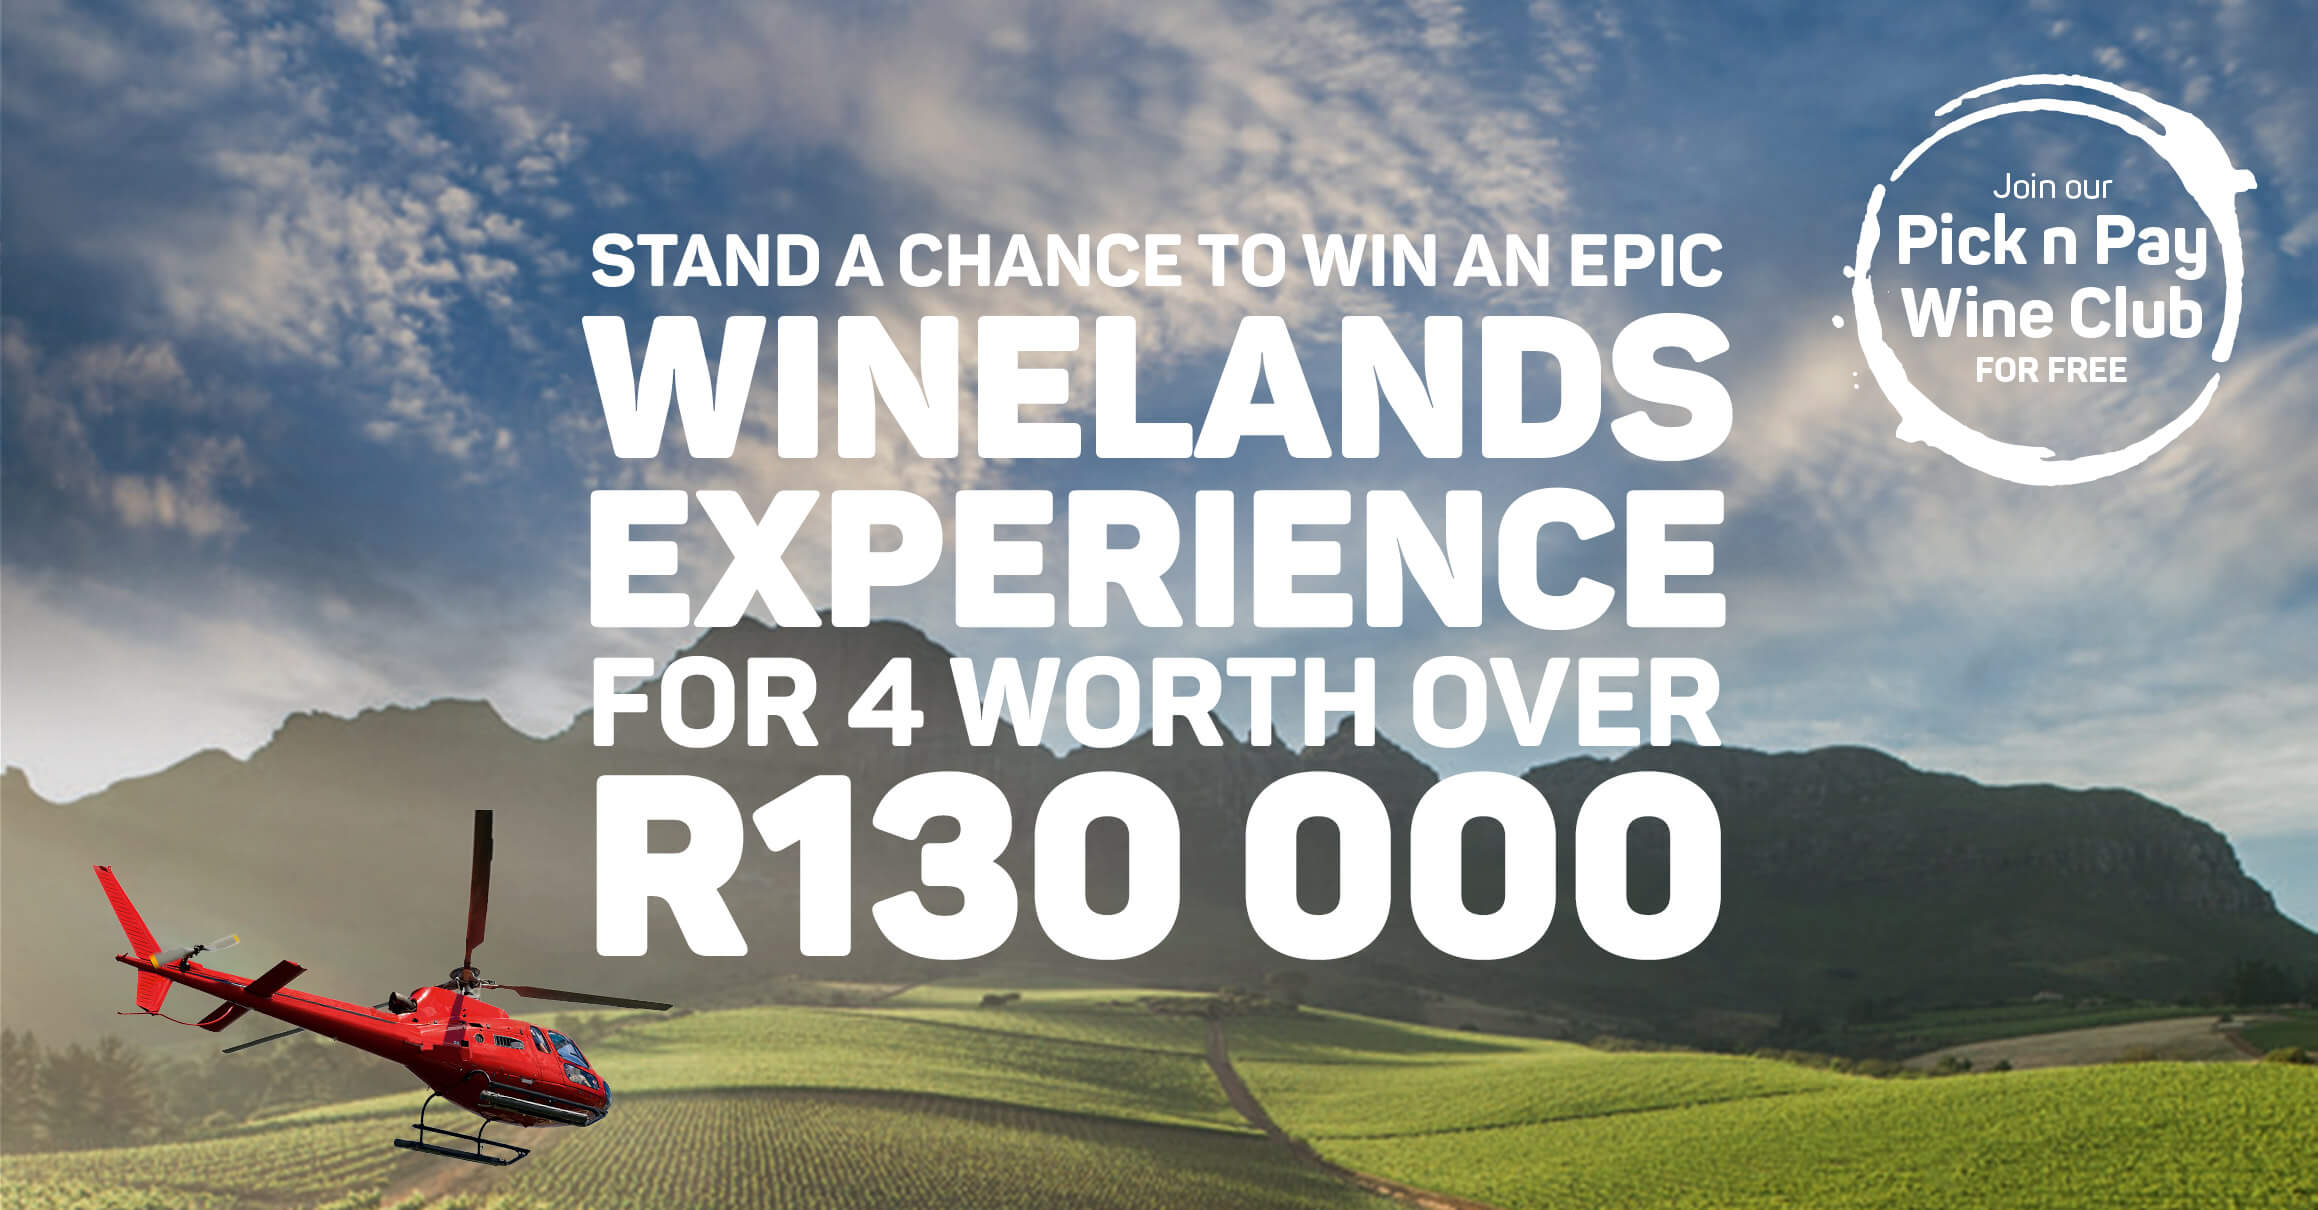 Stand a chance to Win an epic winelands experience for 4 worth over R130 000